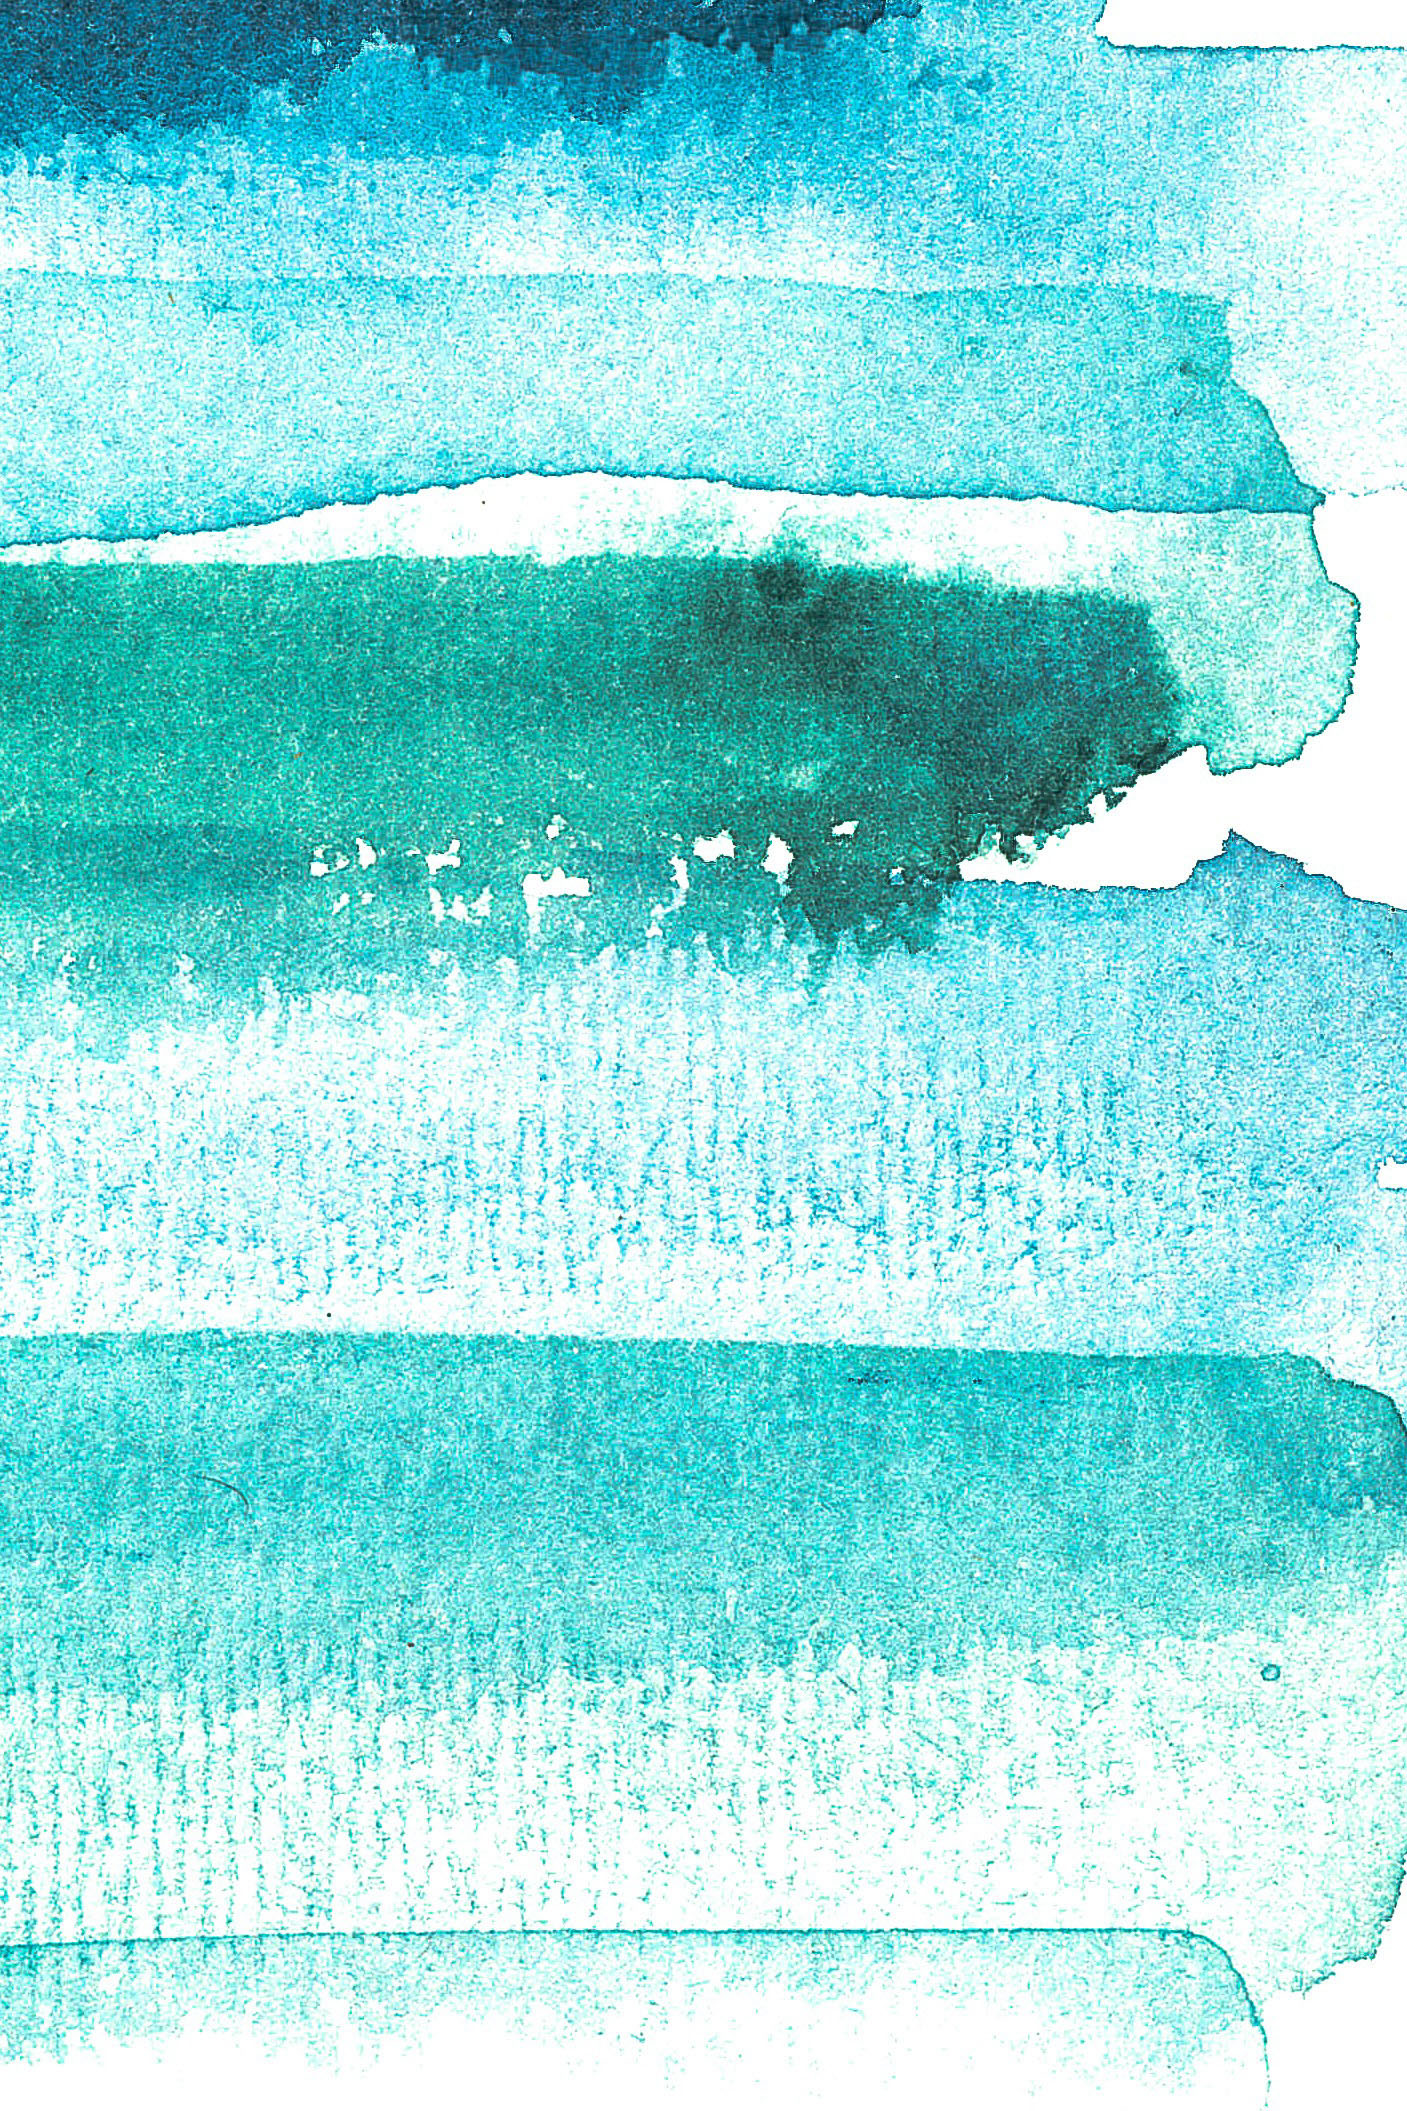 blue watercolor layered abstract.jpg